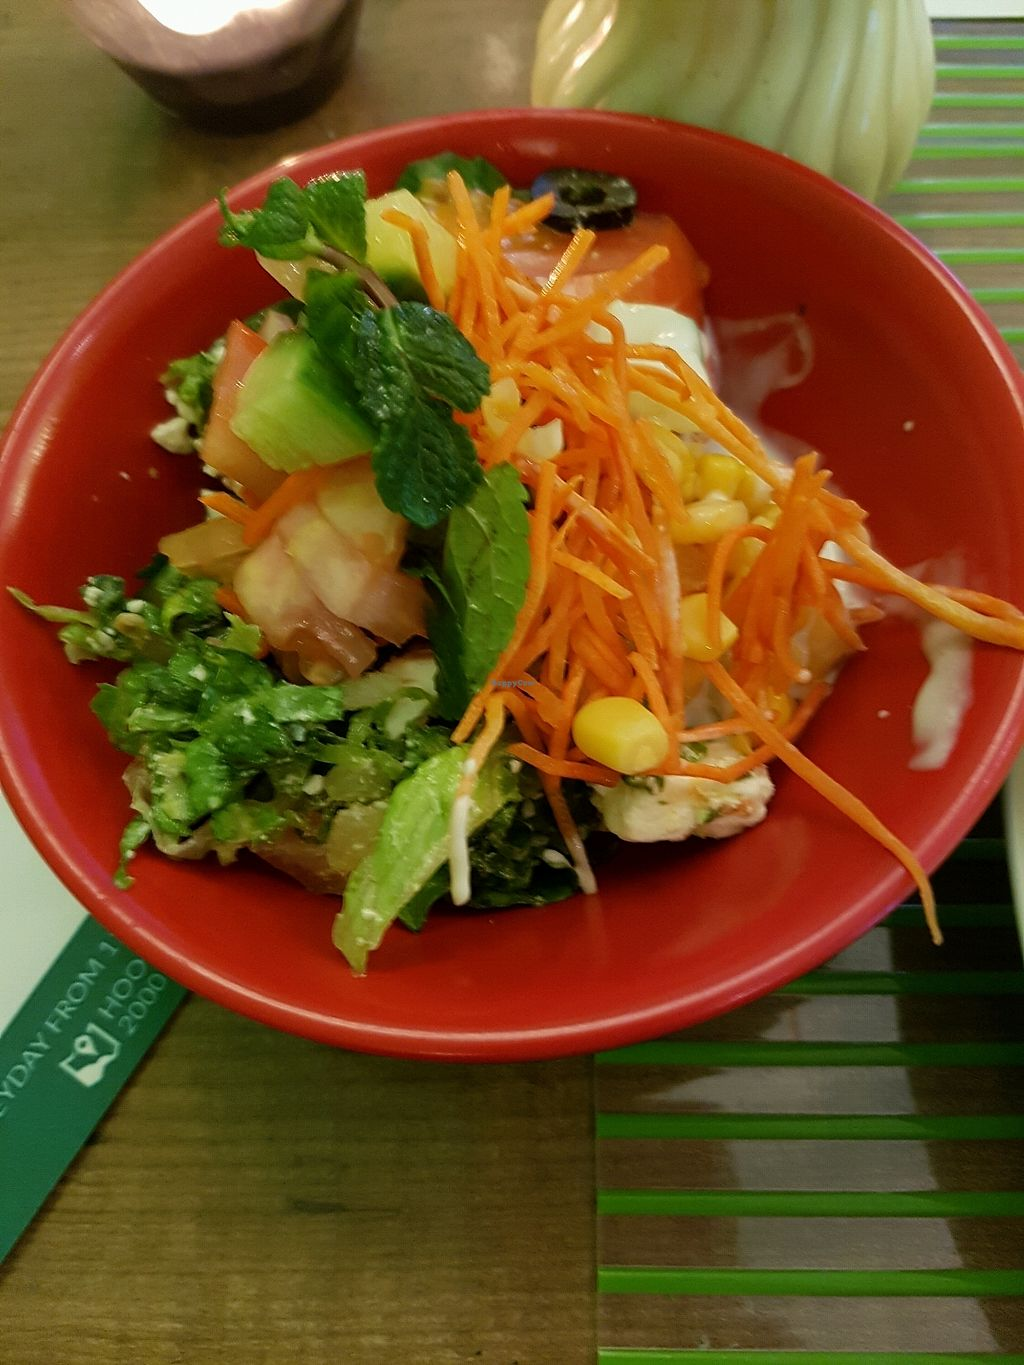 """Photo of VegeOrient  by <a href=""""/members/profile/HarleyColes"""">HarleyColes</a> <br/>Salad Bar <br/> December 28, 2017  - <a href='/contact/abuse/image/61214/340228'>Report</a>"""